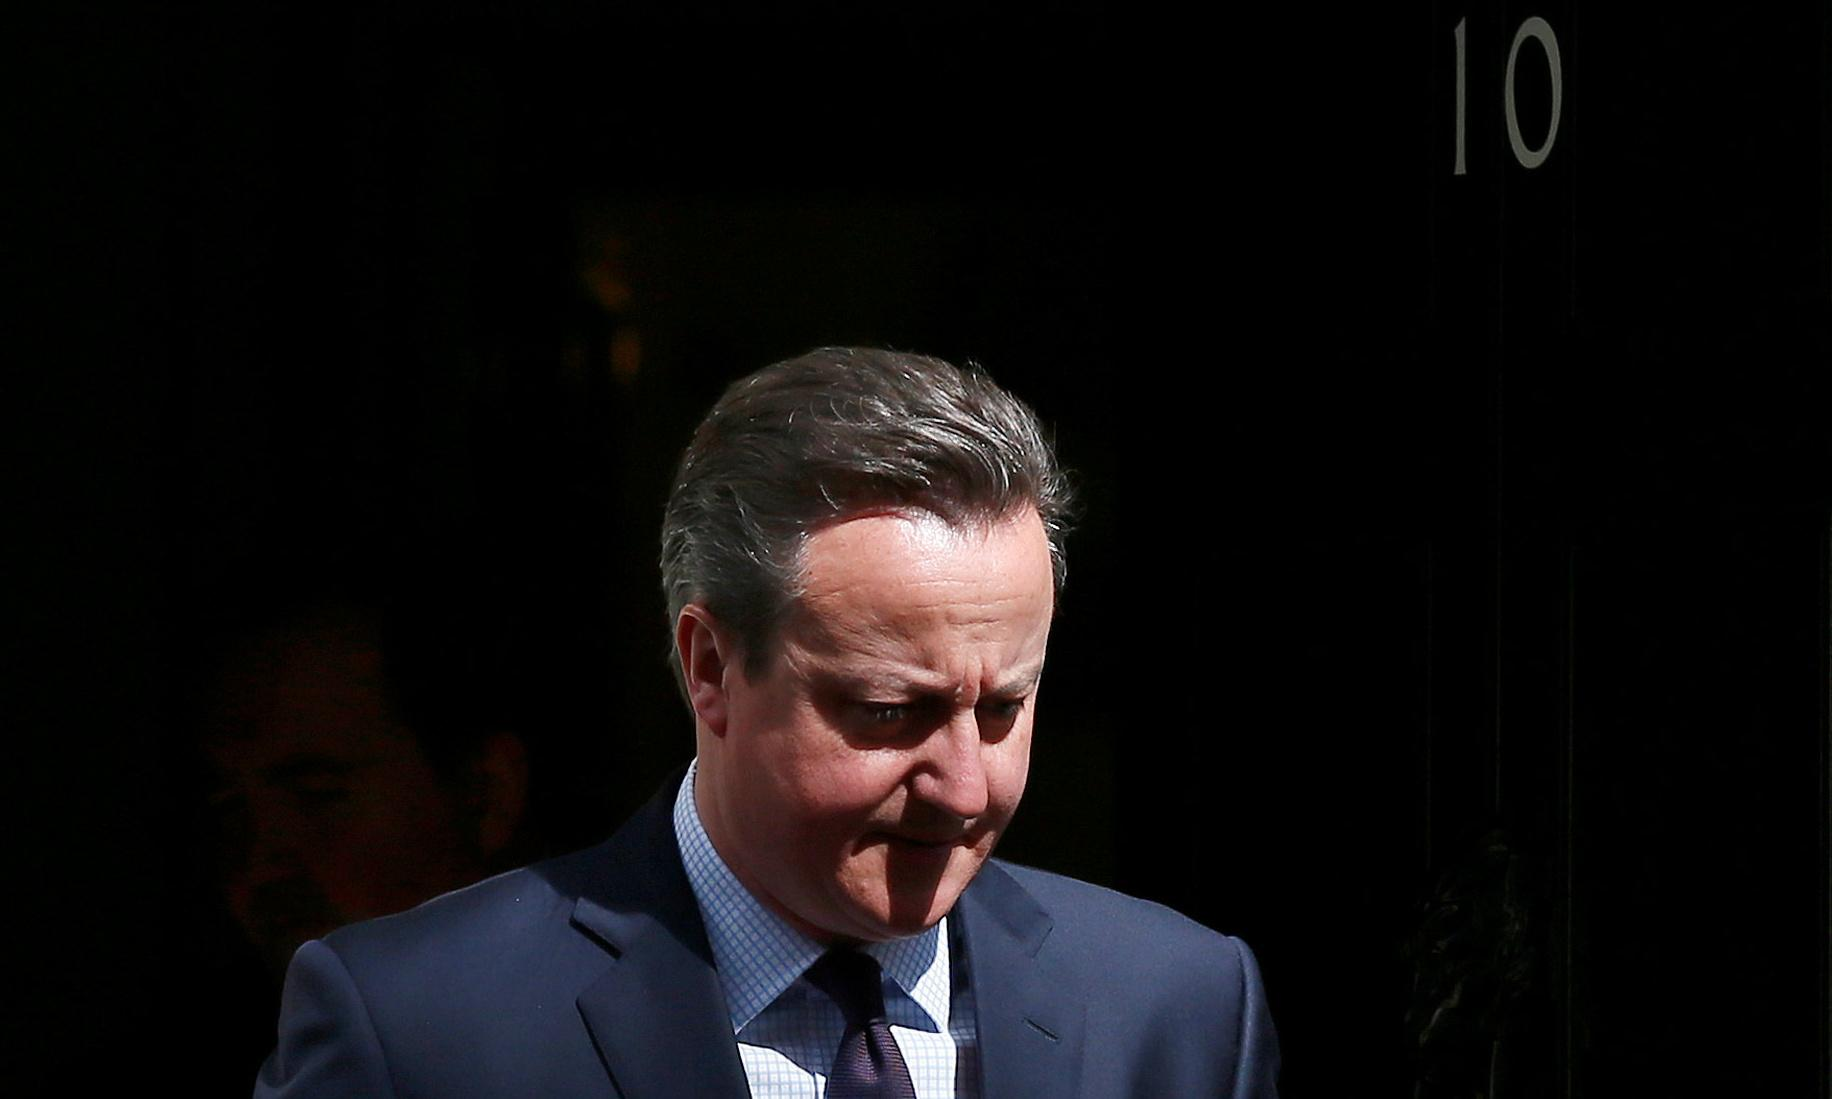 For the Record: signs of trouble before David Cameron book hits shelves